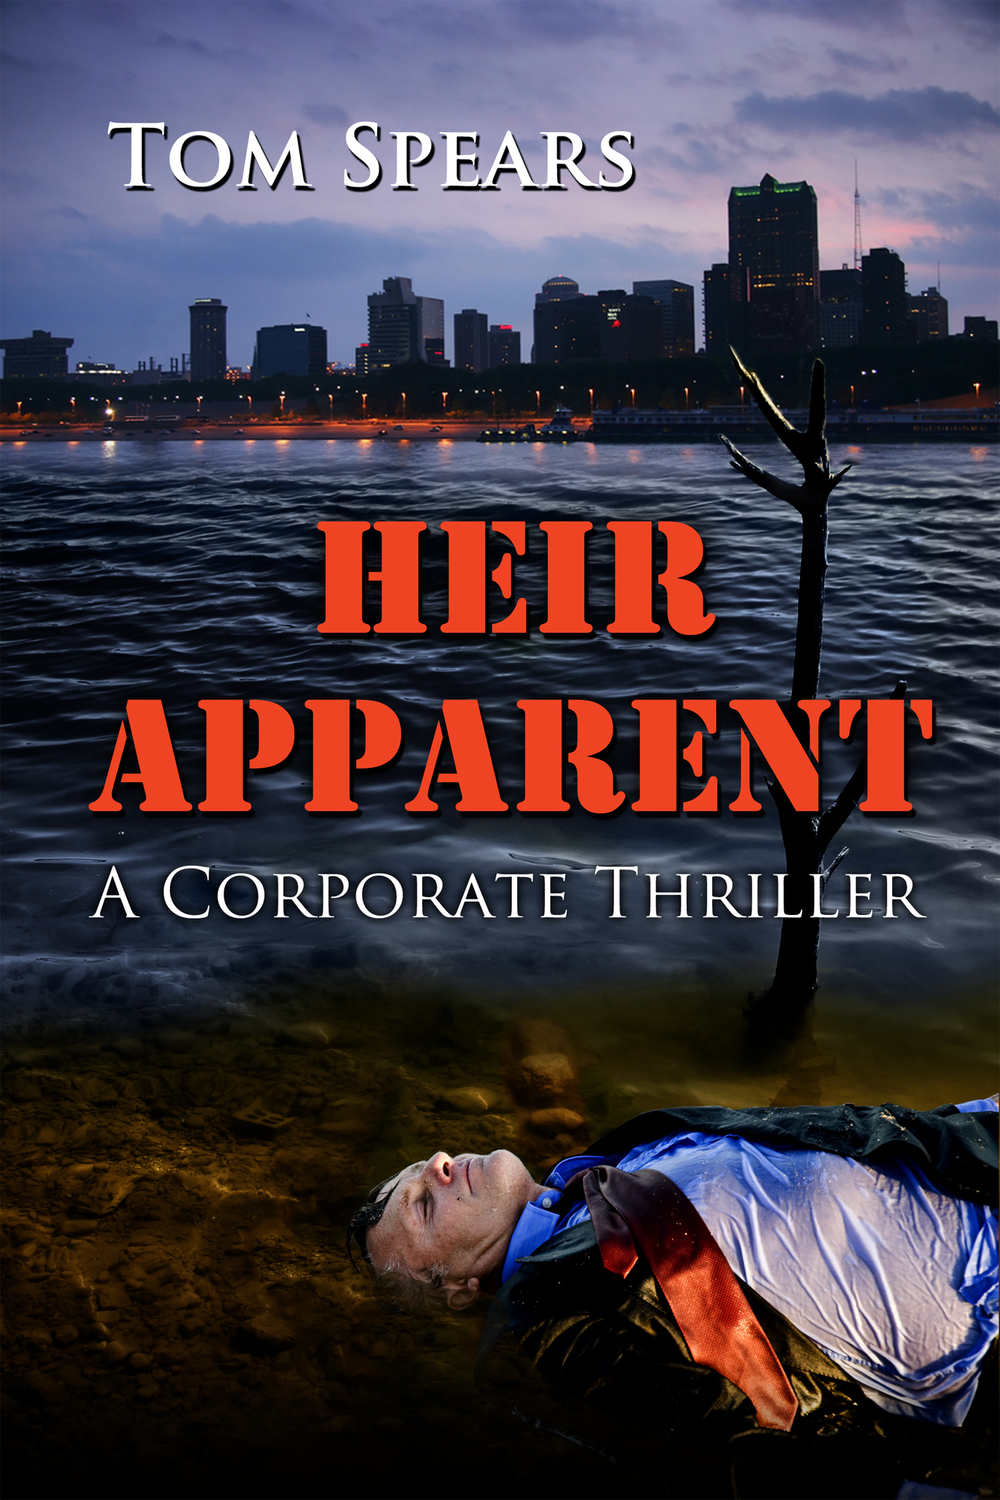 HEIR APPARENT is the sequel to my featured novel today, DELIVERABLES.  Click on any image for more information.